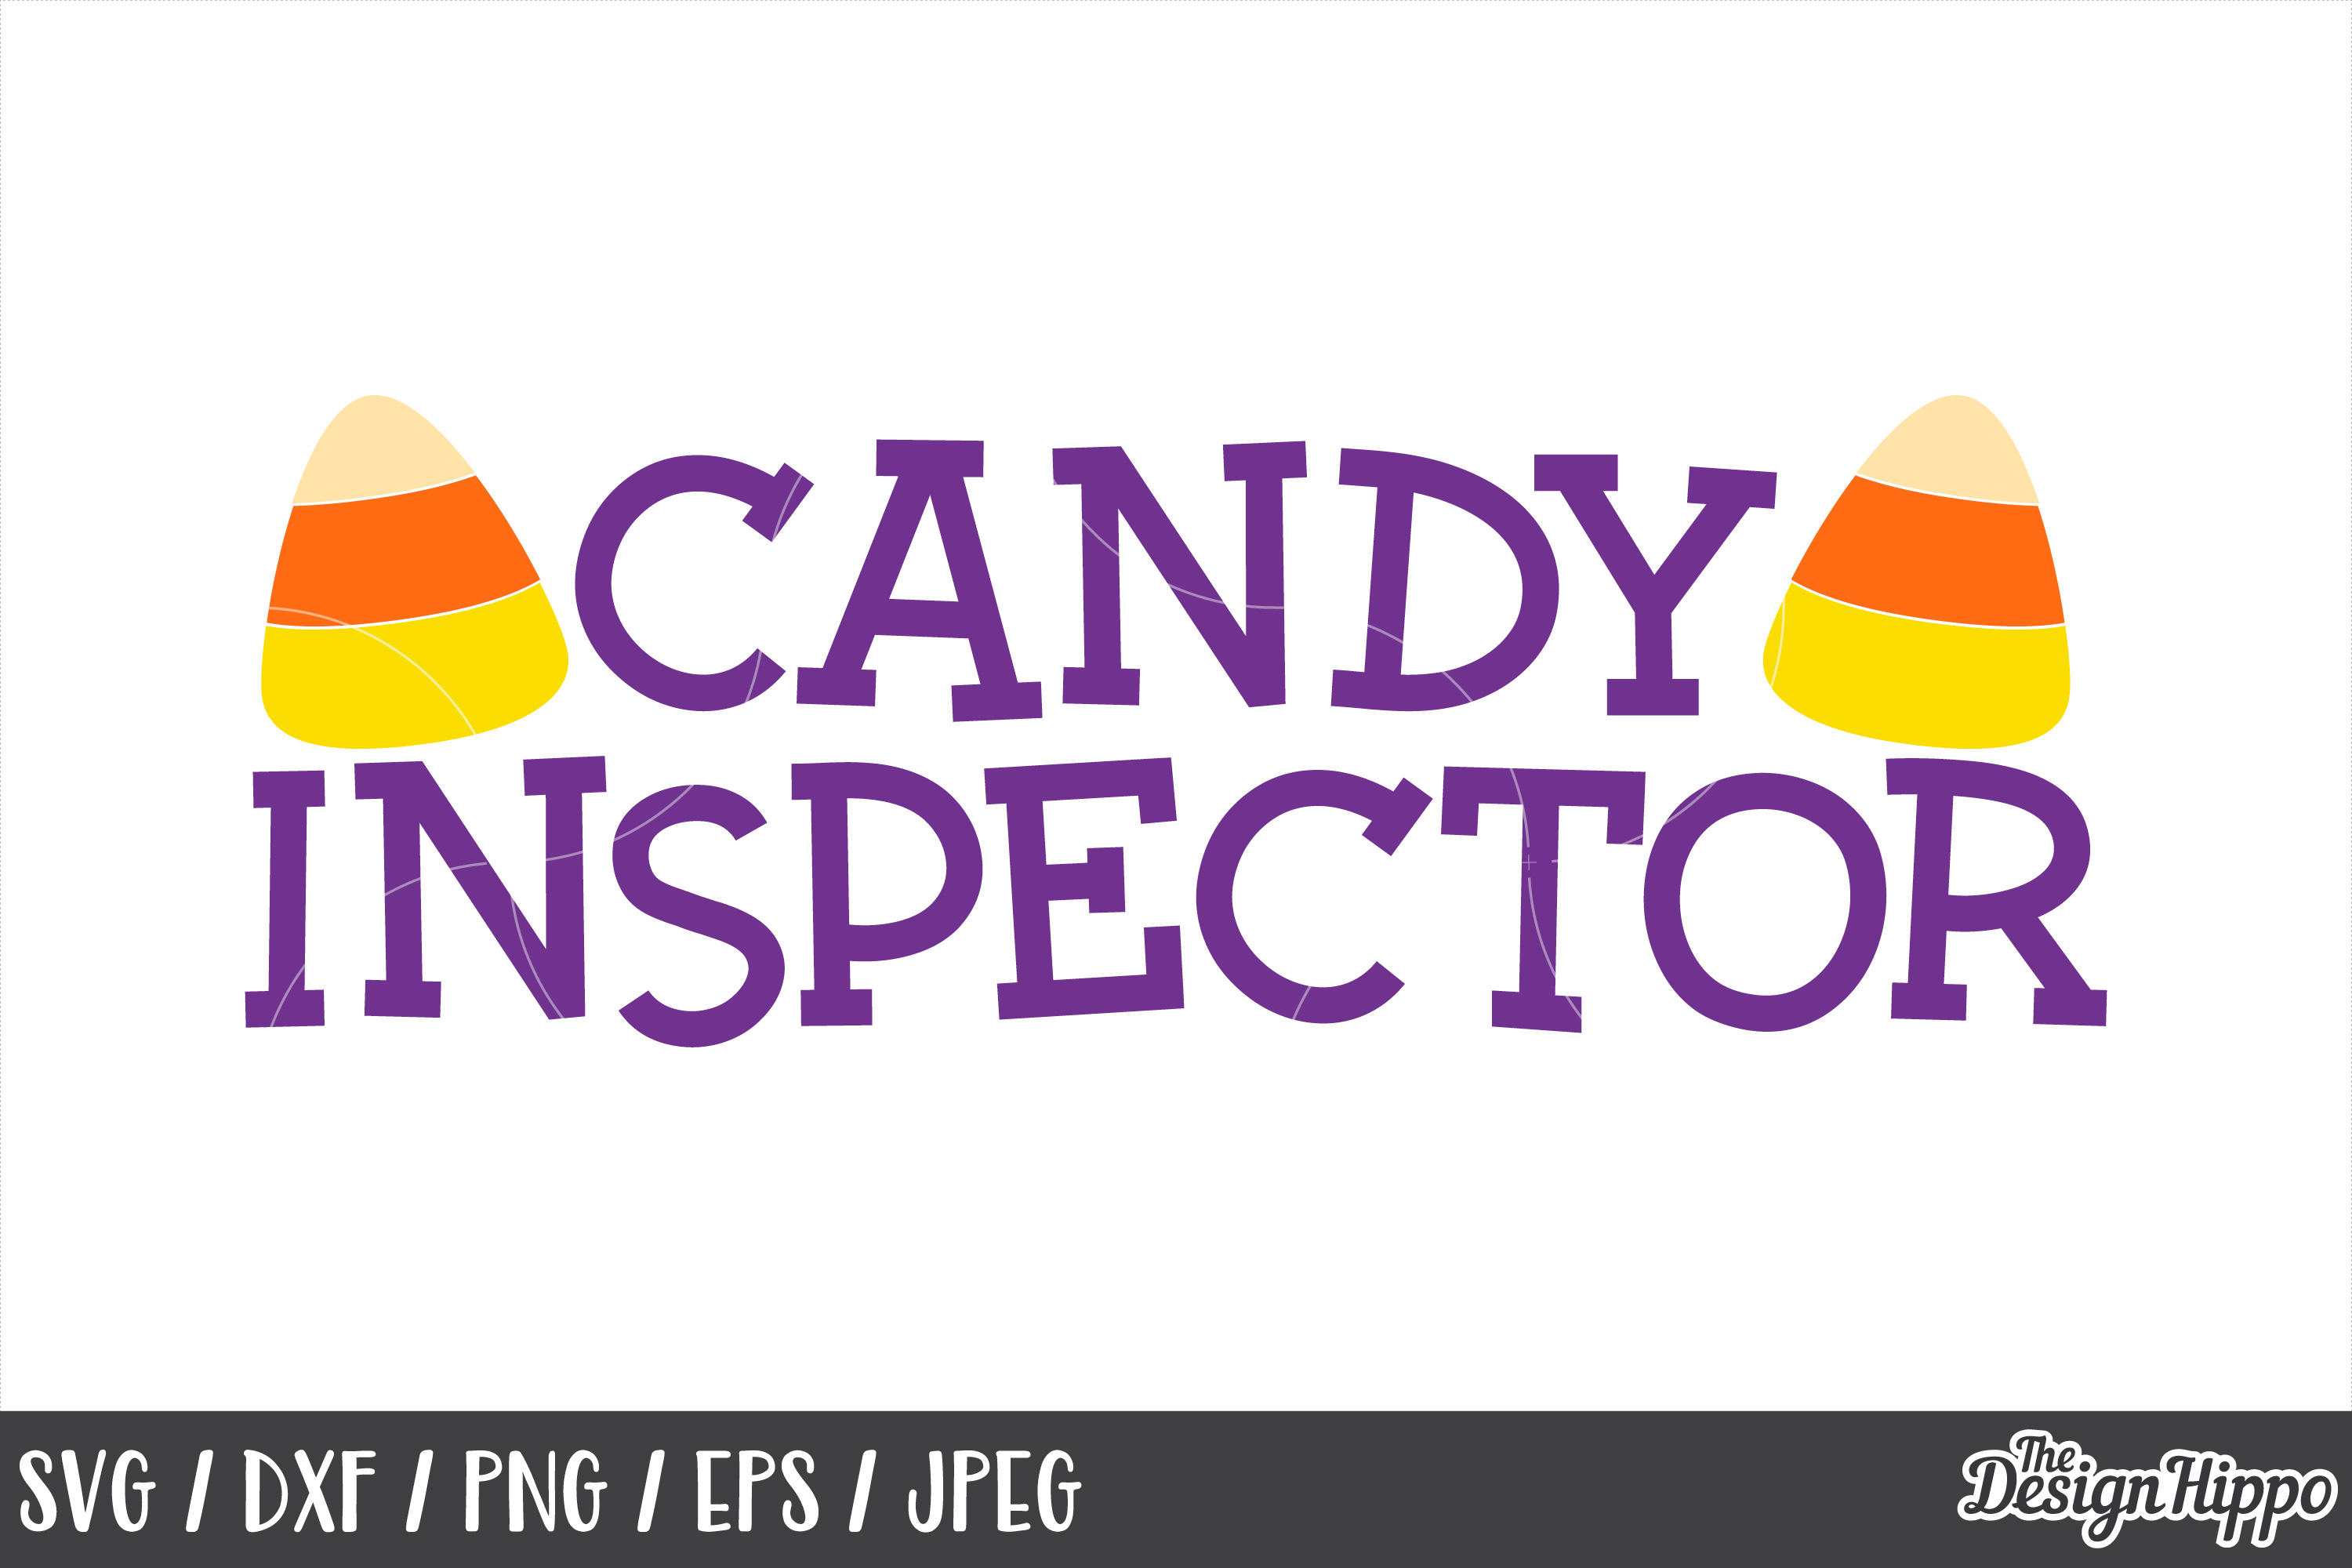 Candy inspector SVG, Candy corn, Cute, Halloween, SVG, PNG example image 1